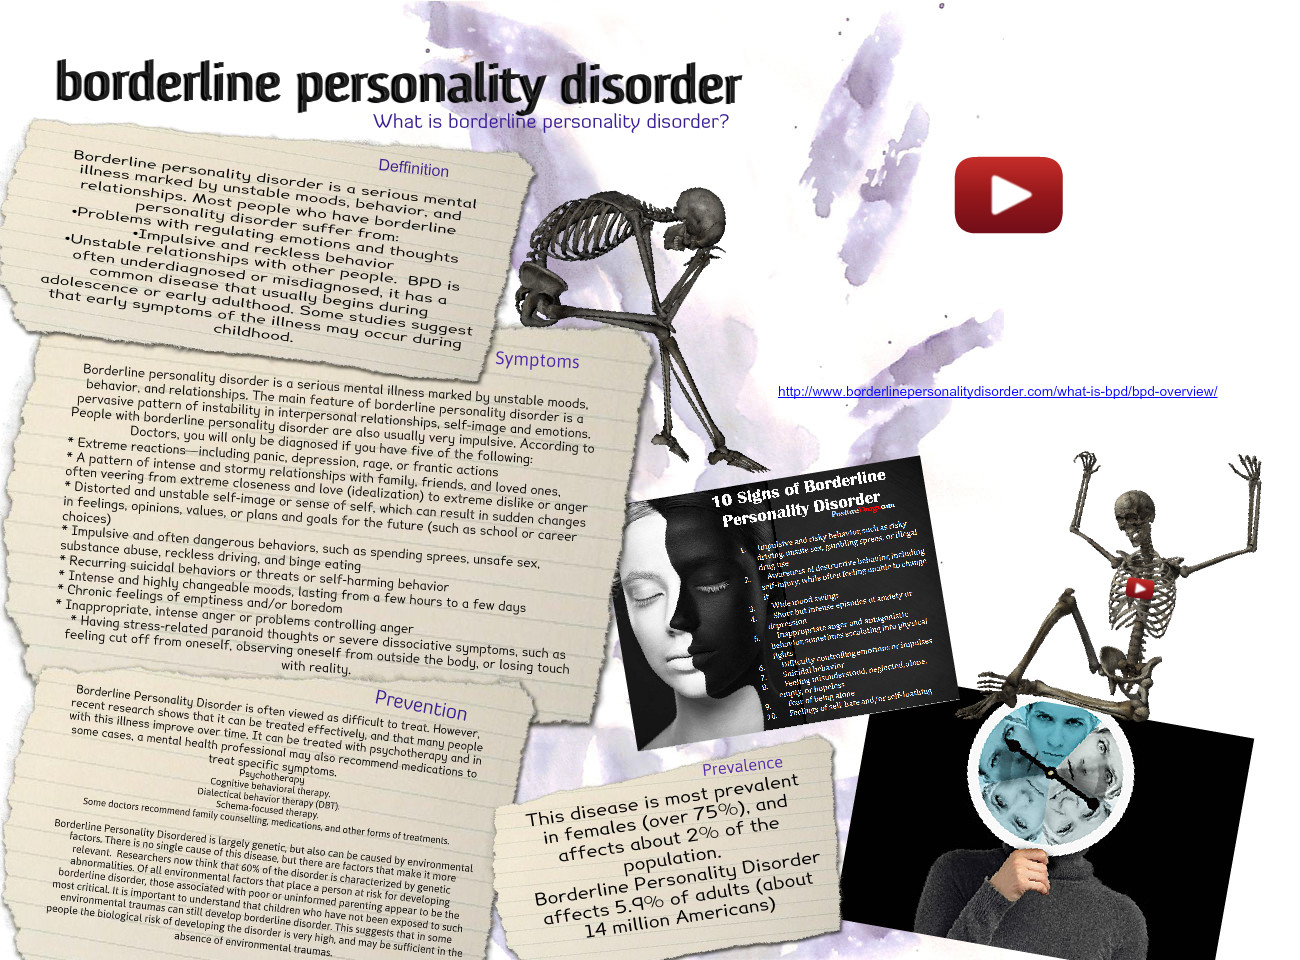 early signs of borderline personality